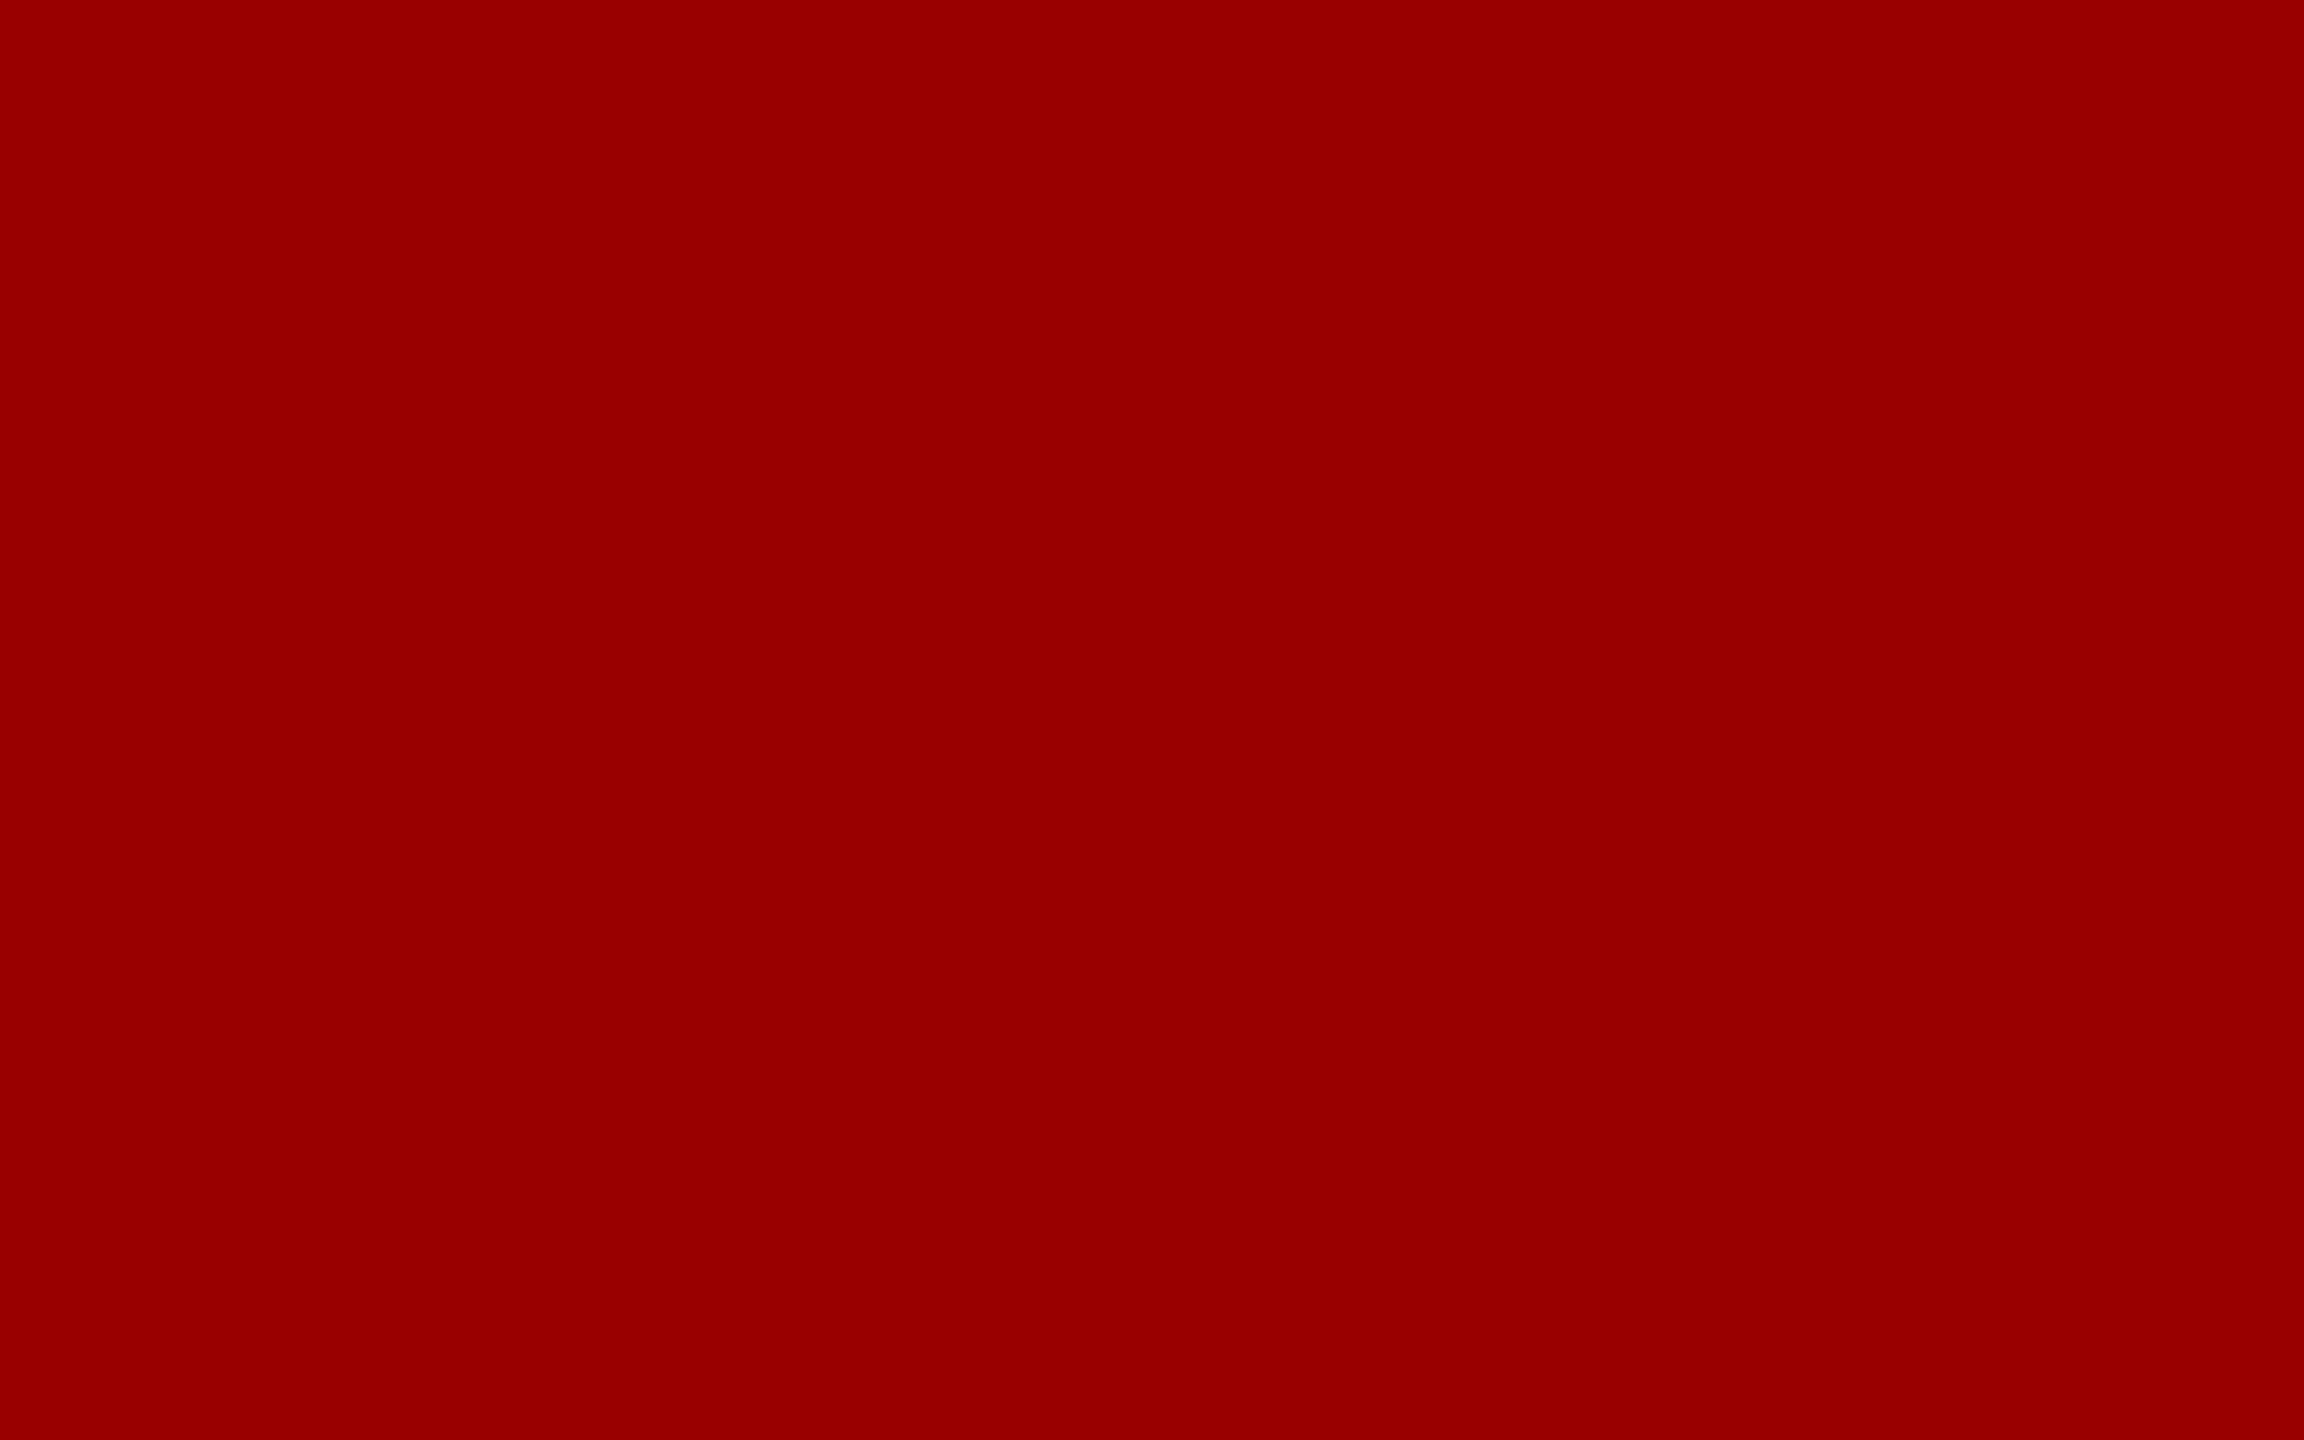 2304x1440 OU Crimson Red Solid Color Background